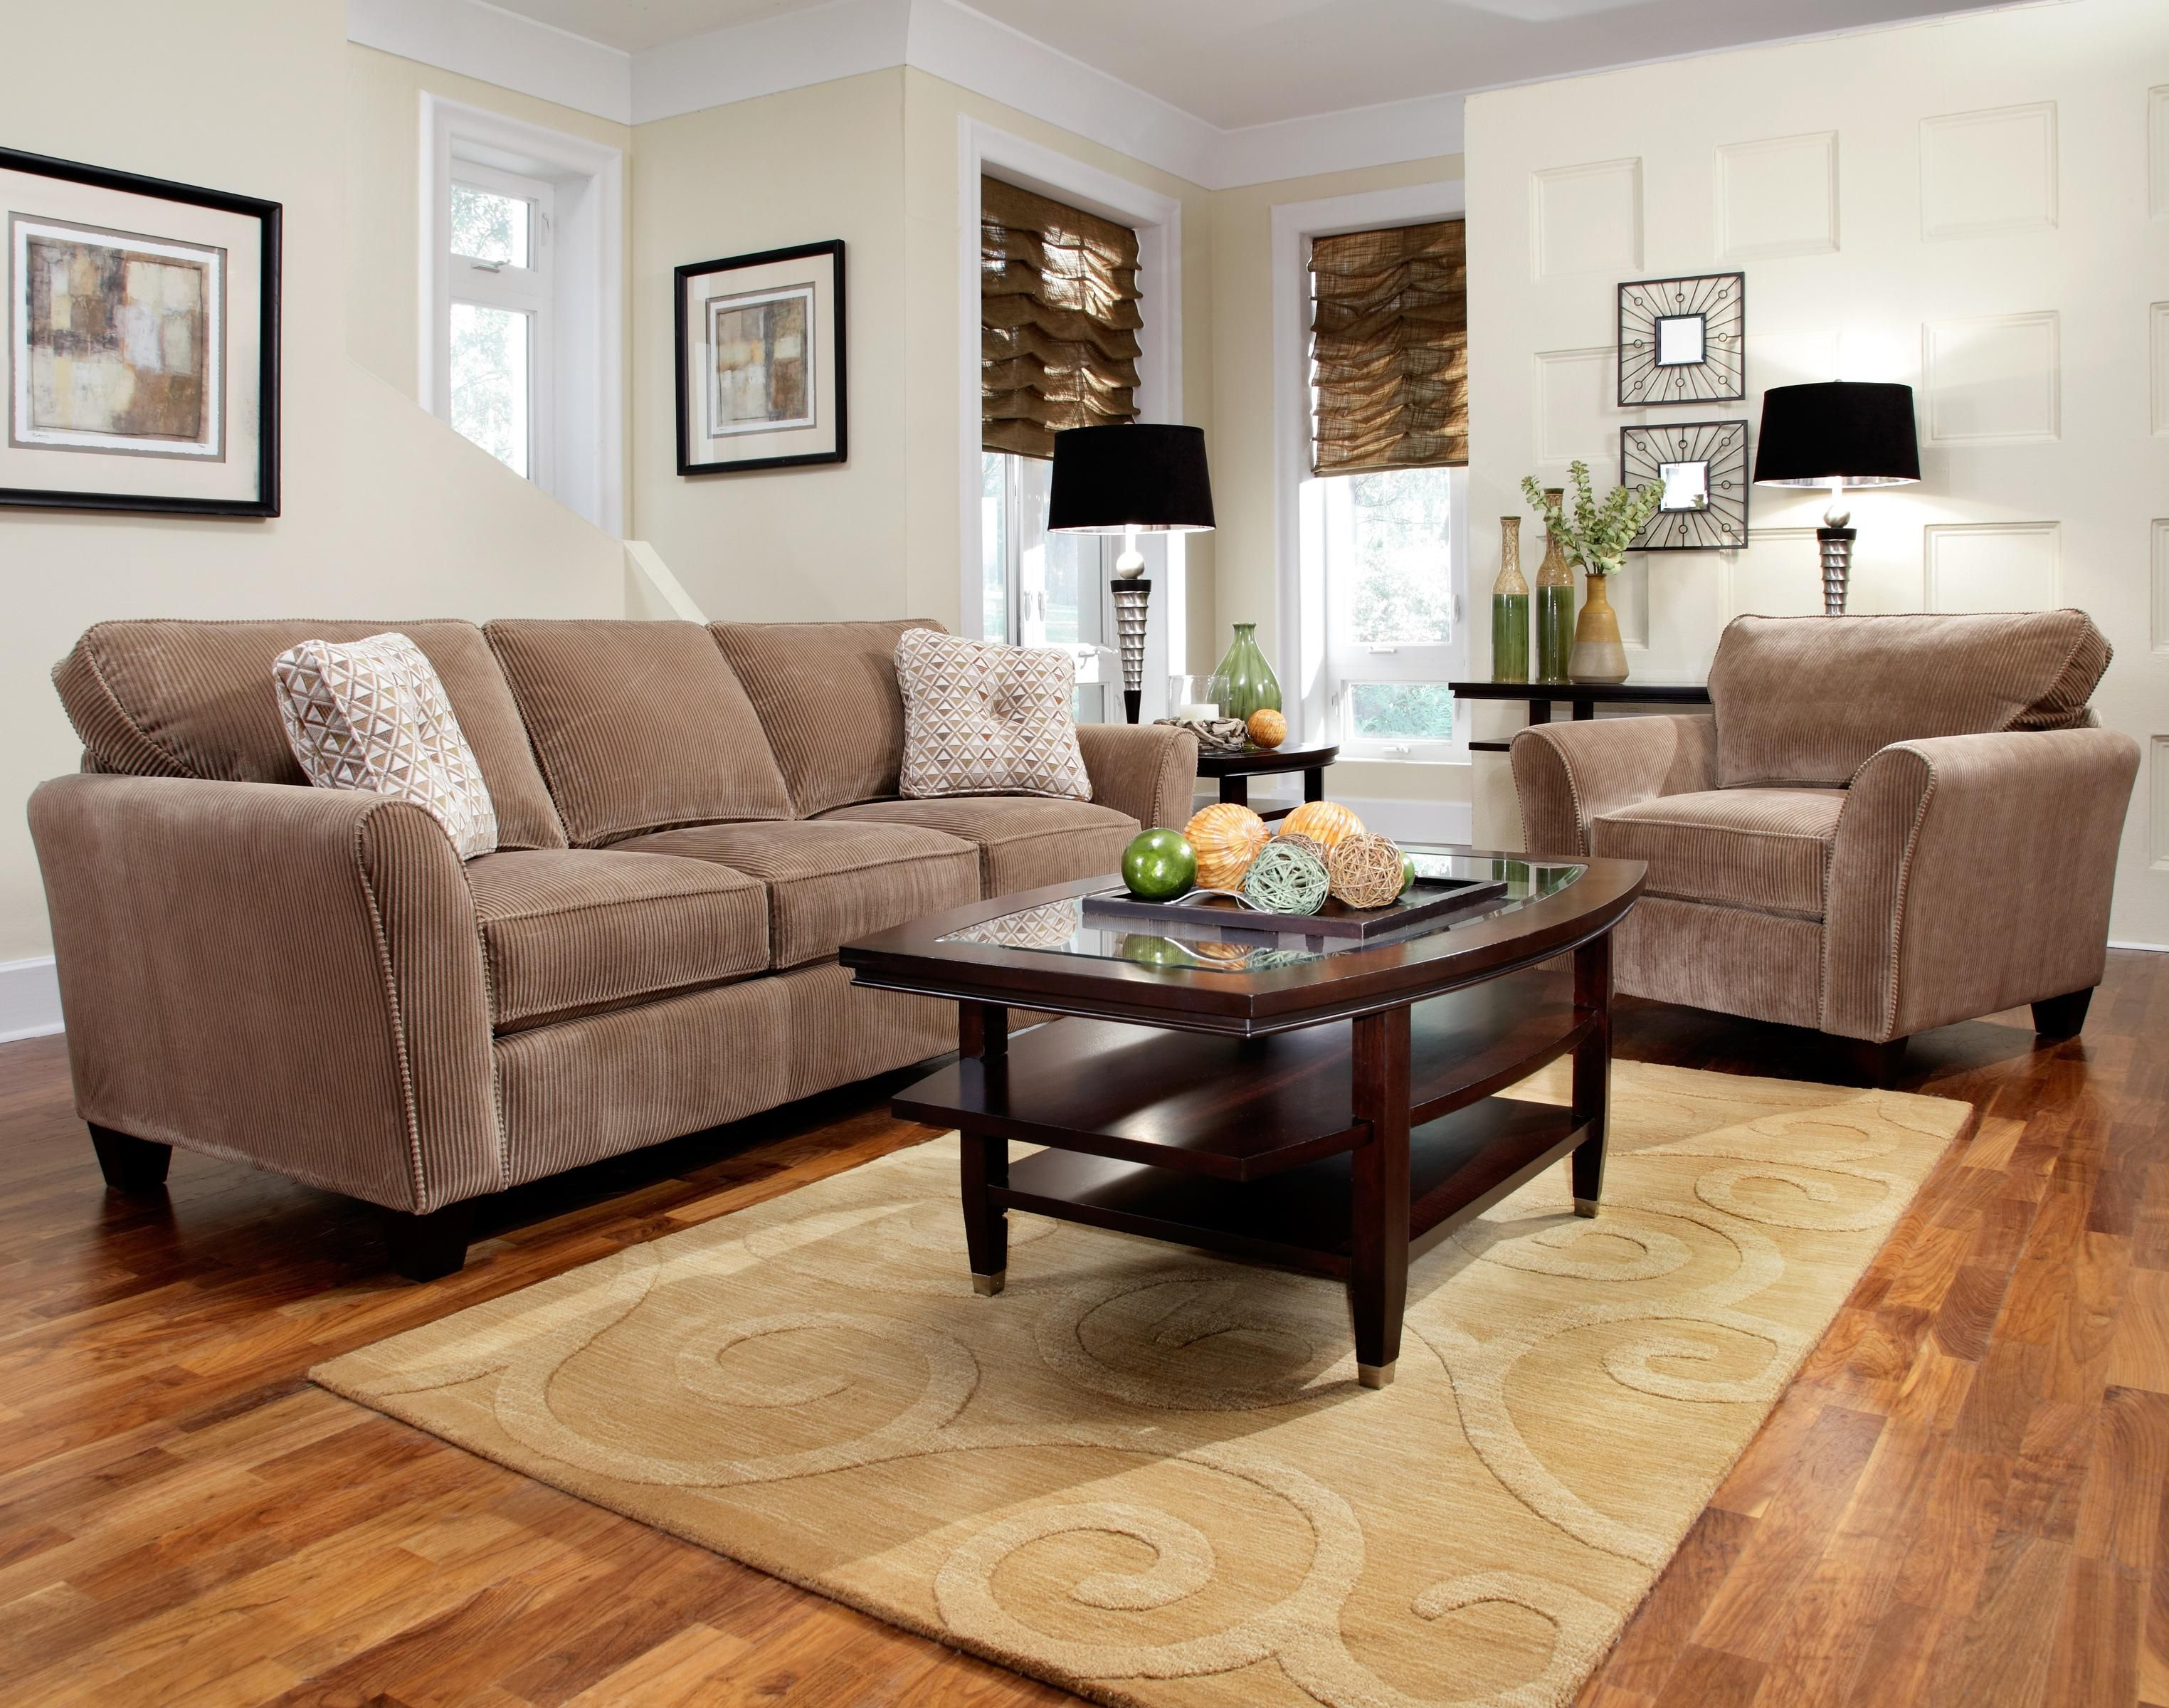 Broyhill Affinity Dining Room Set Broyhill Furniture Maddie Living Room Collection Featuring Sofa